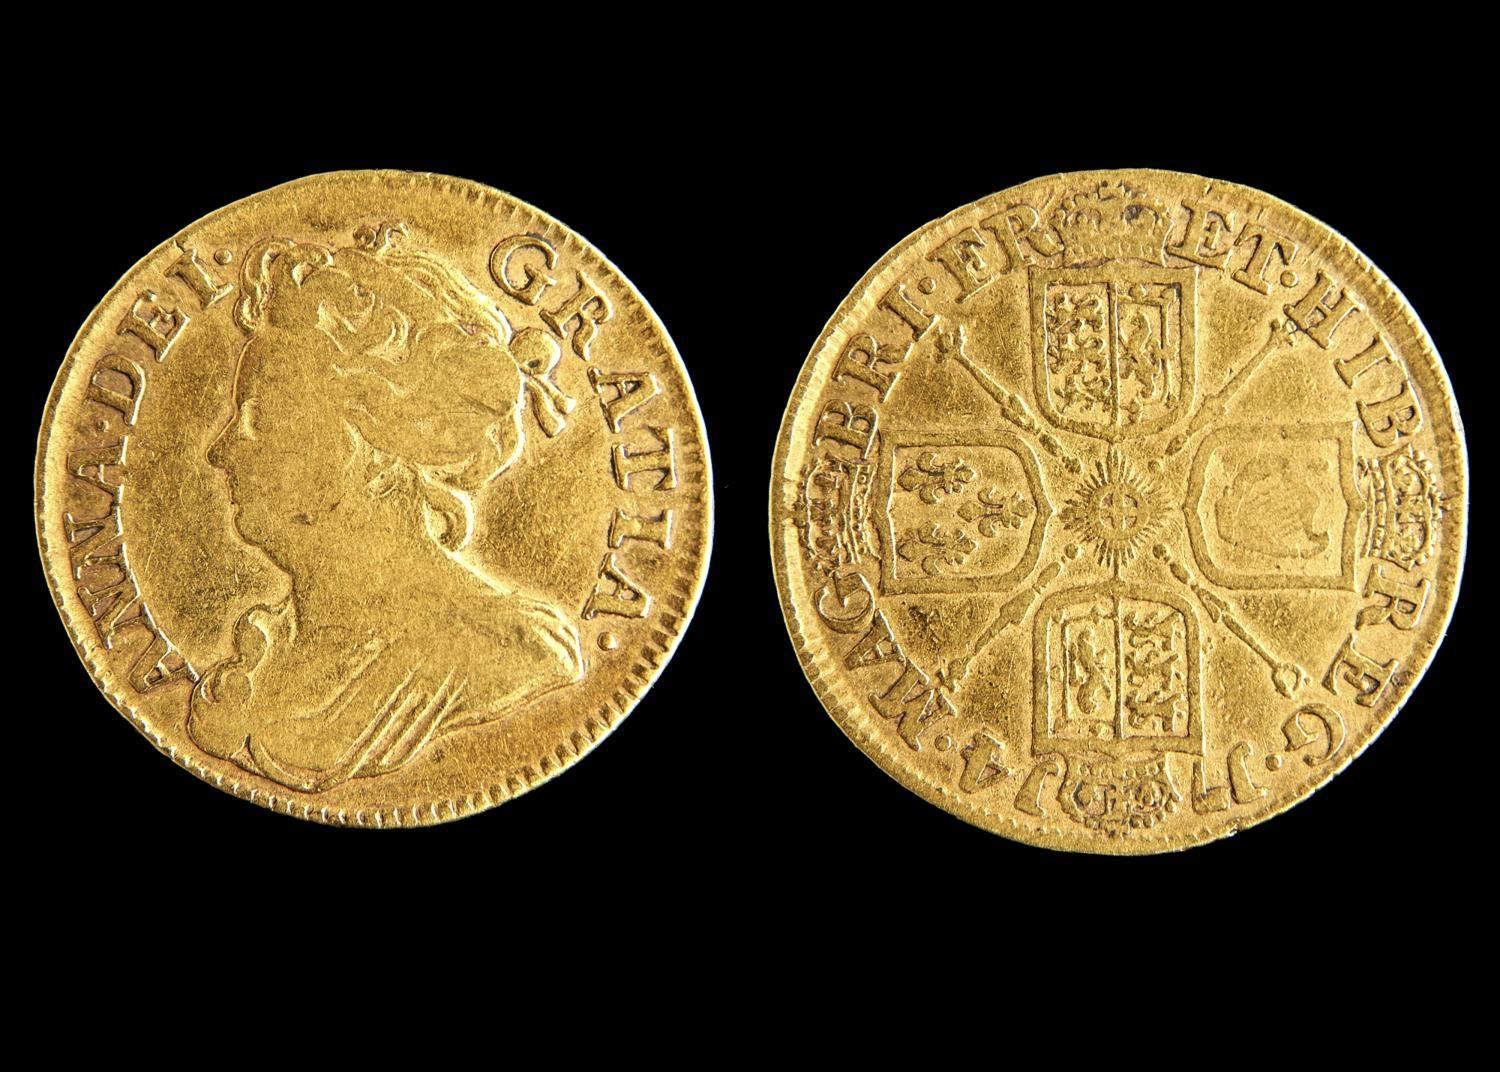 GOLD COIN. GUINEA 1714, FINE POSSIBLE VERY LIGHT TRACES OF EDGE MOUNT